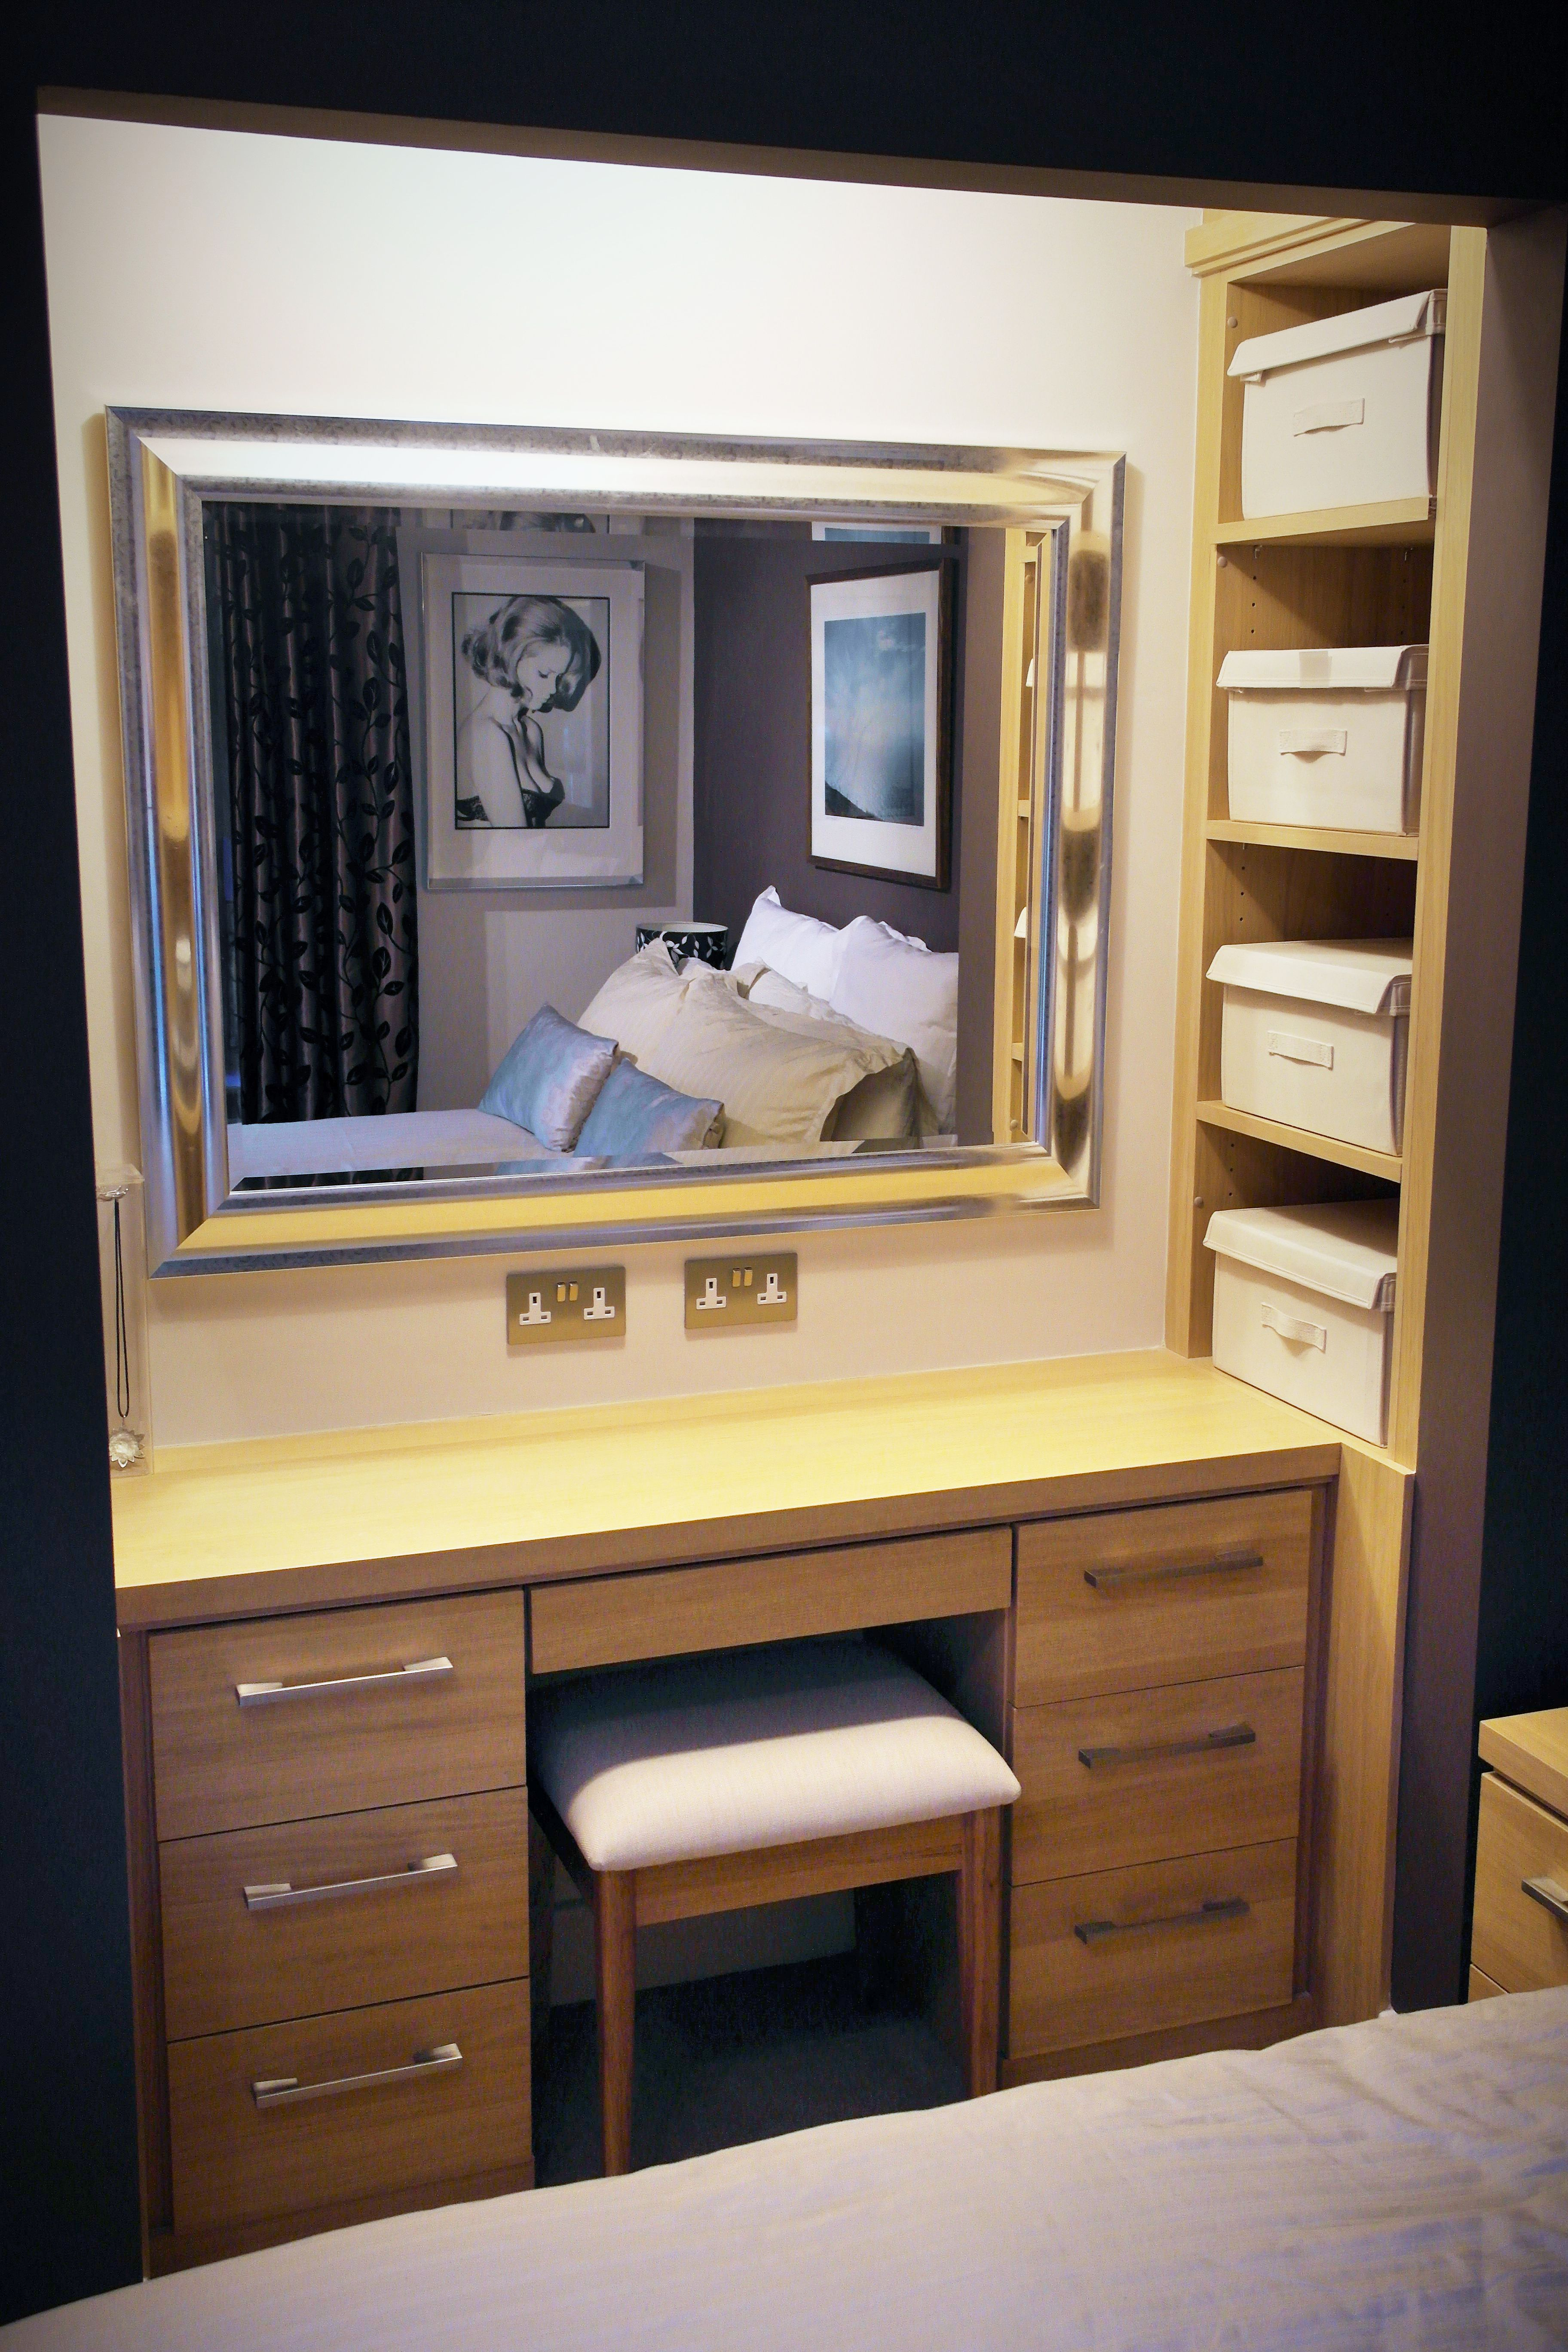 Bespoke dressing table and storage area in an alcove space fitted